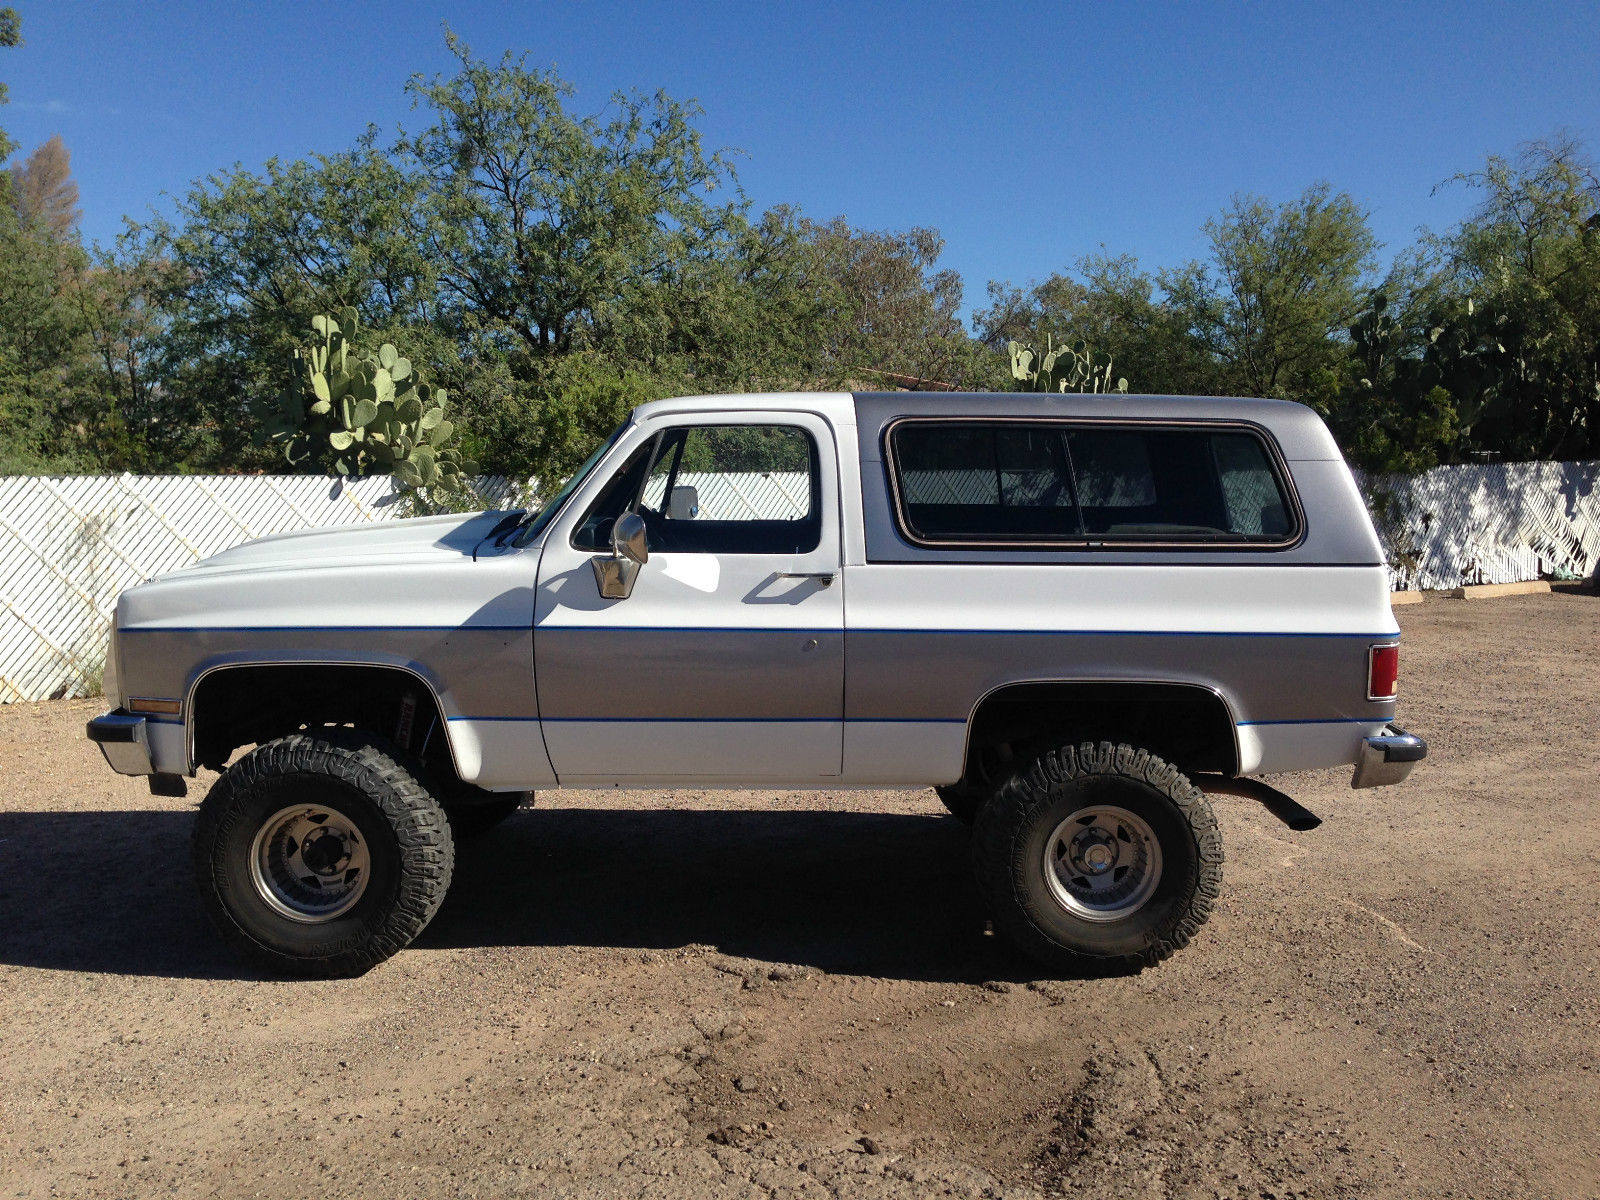 Gmc Jimmy Chevrolet K5 Blazer For Sale In Tucson Arizona